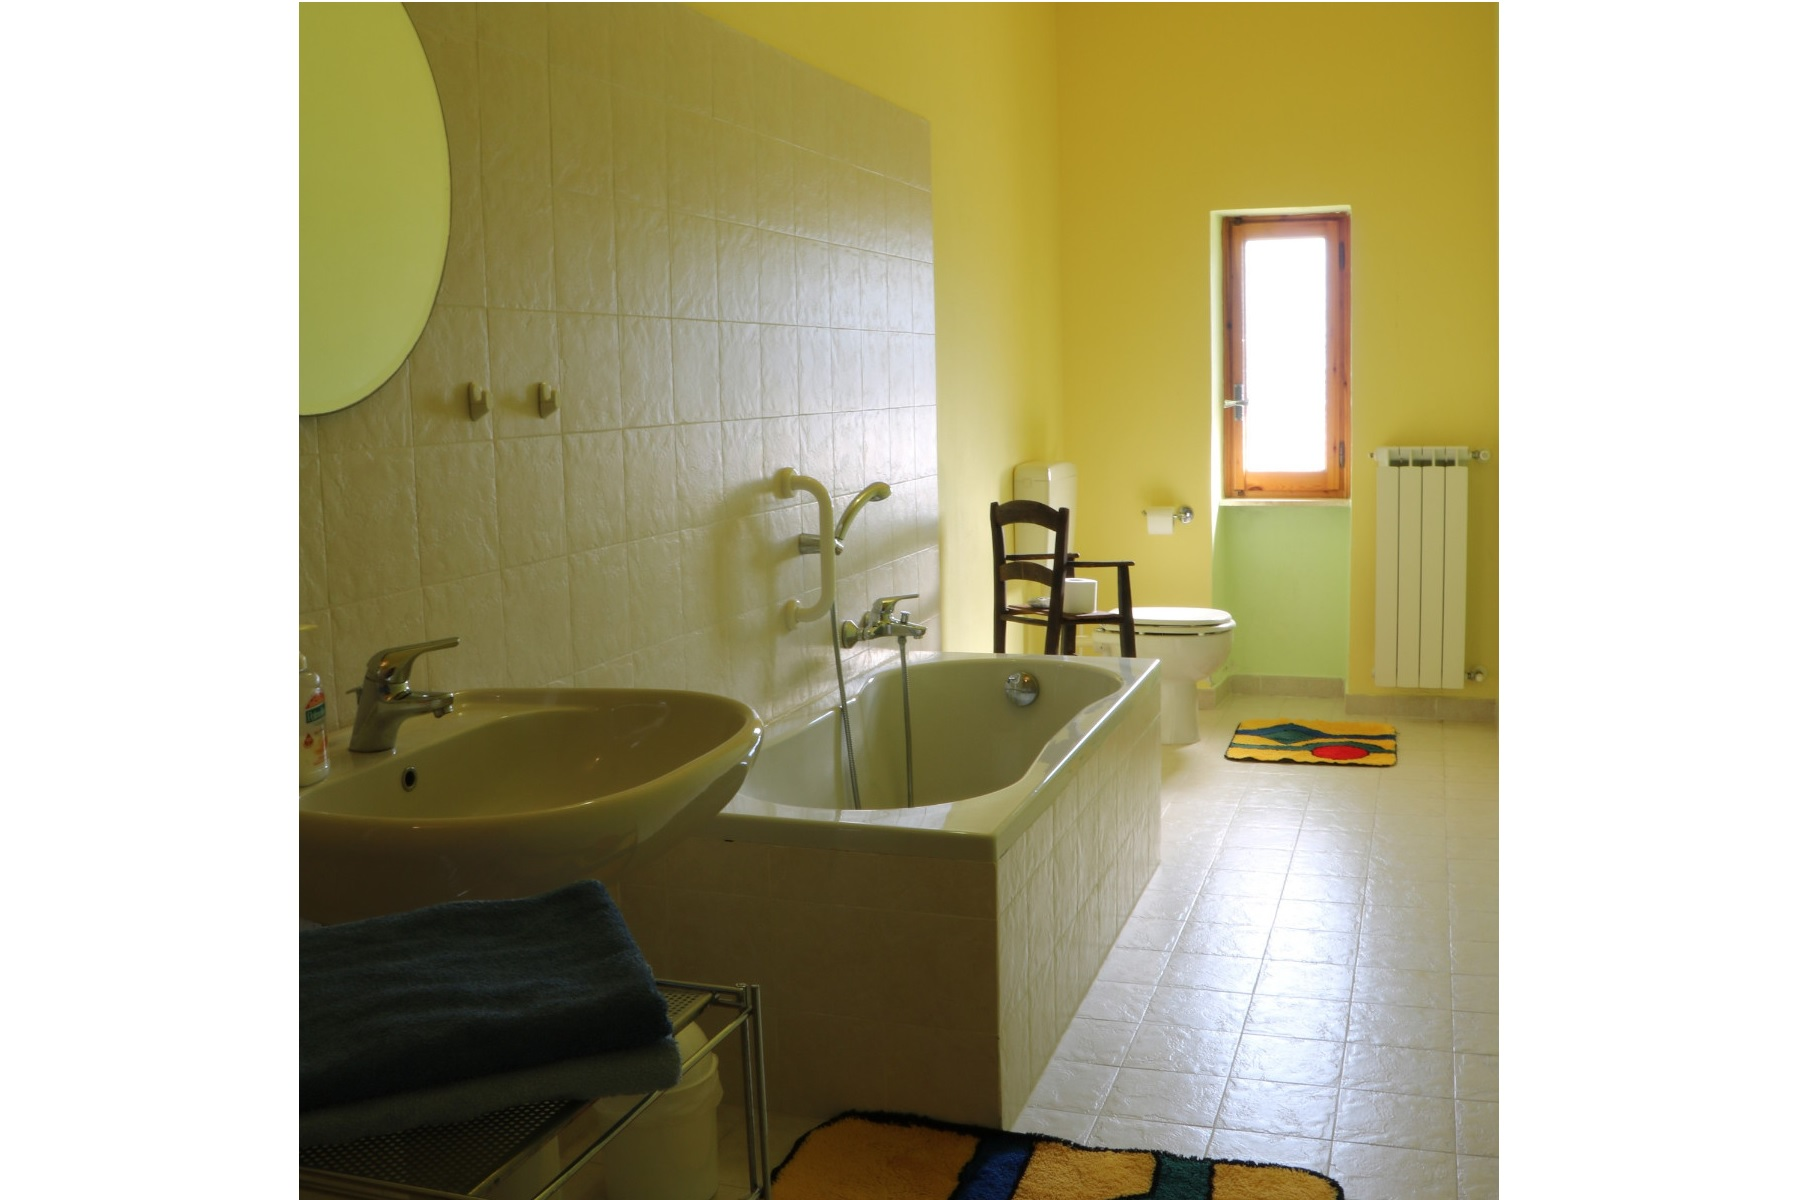 Casa Re, Piemonte - Badezimmer im Apartment Mama | Bathroom in apartment Mama | Stanza da bagno in appartamento Mama